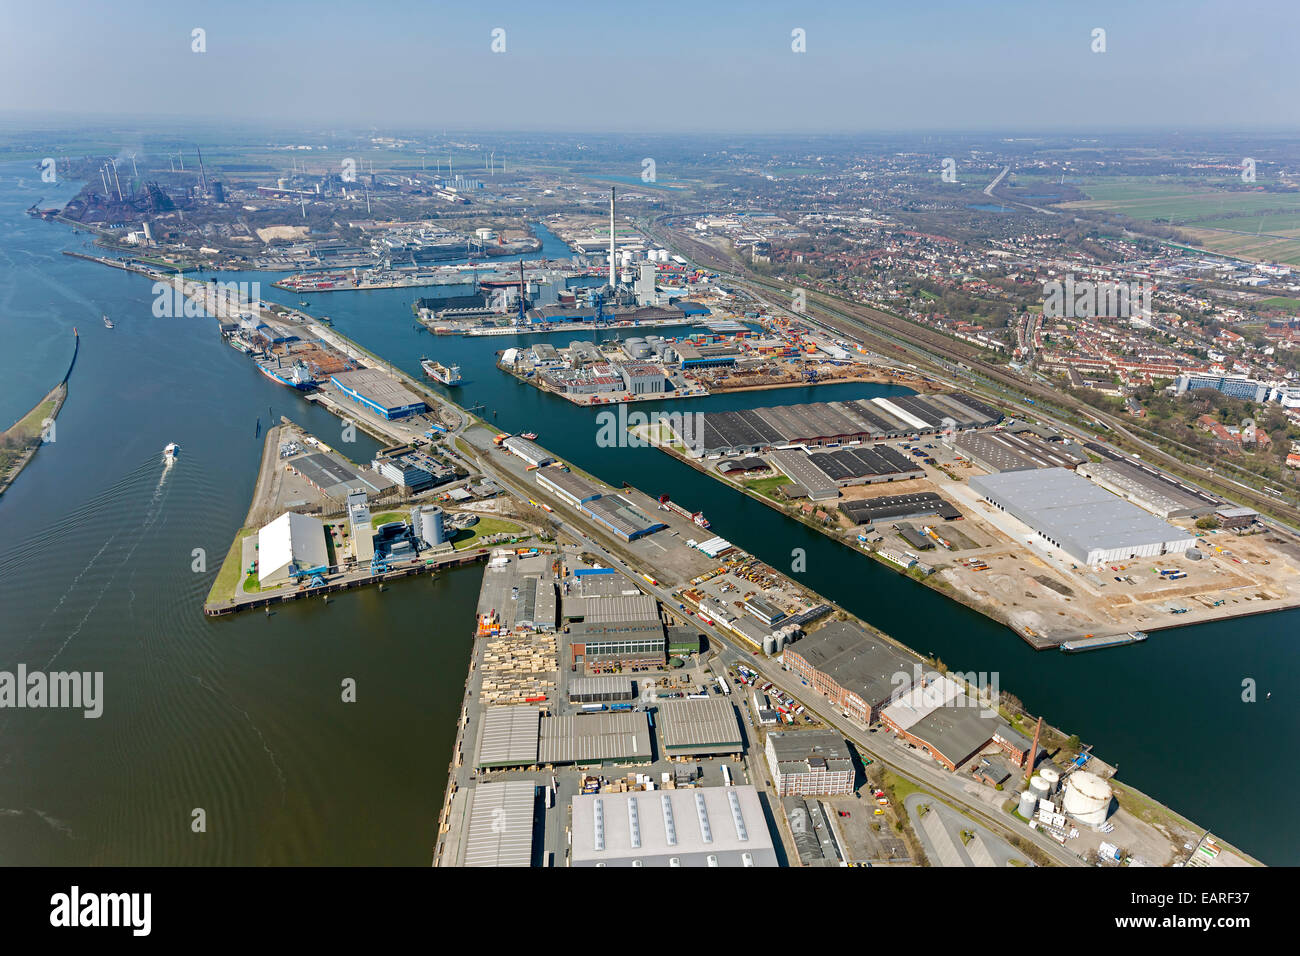 port of bremen stockfotos port of bremen bilder alamy. Black Bedroom Furniture Sets. Home Design Ideas